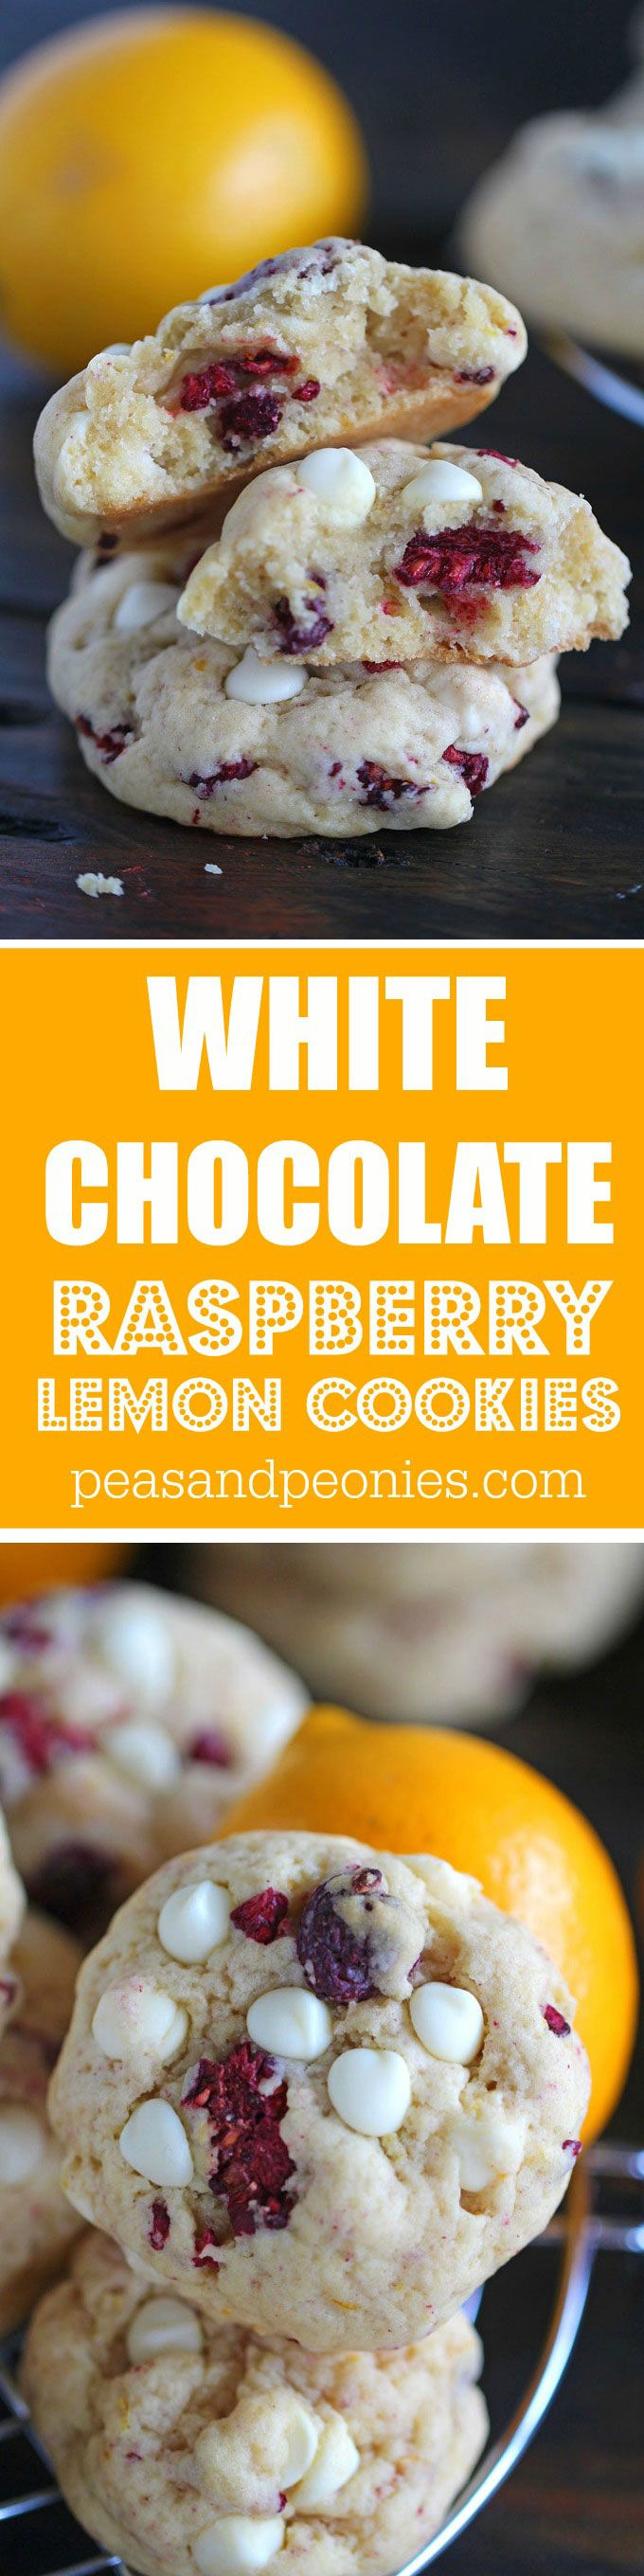 Lemon Raspberry Cookies are so tender and buttery that they melt in your mouth. Loaded with white chocolate chips, lemon zest and sweet raspberries.